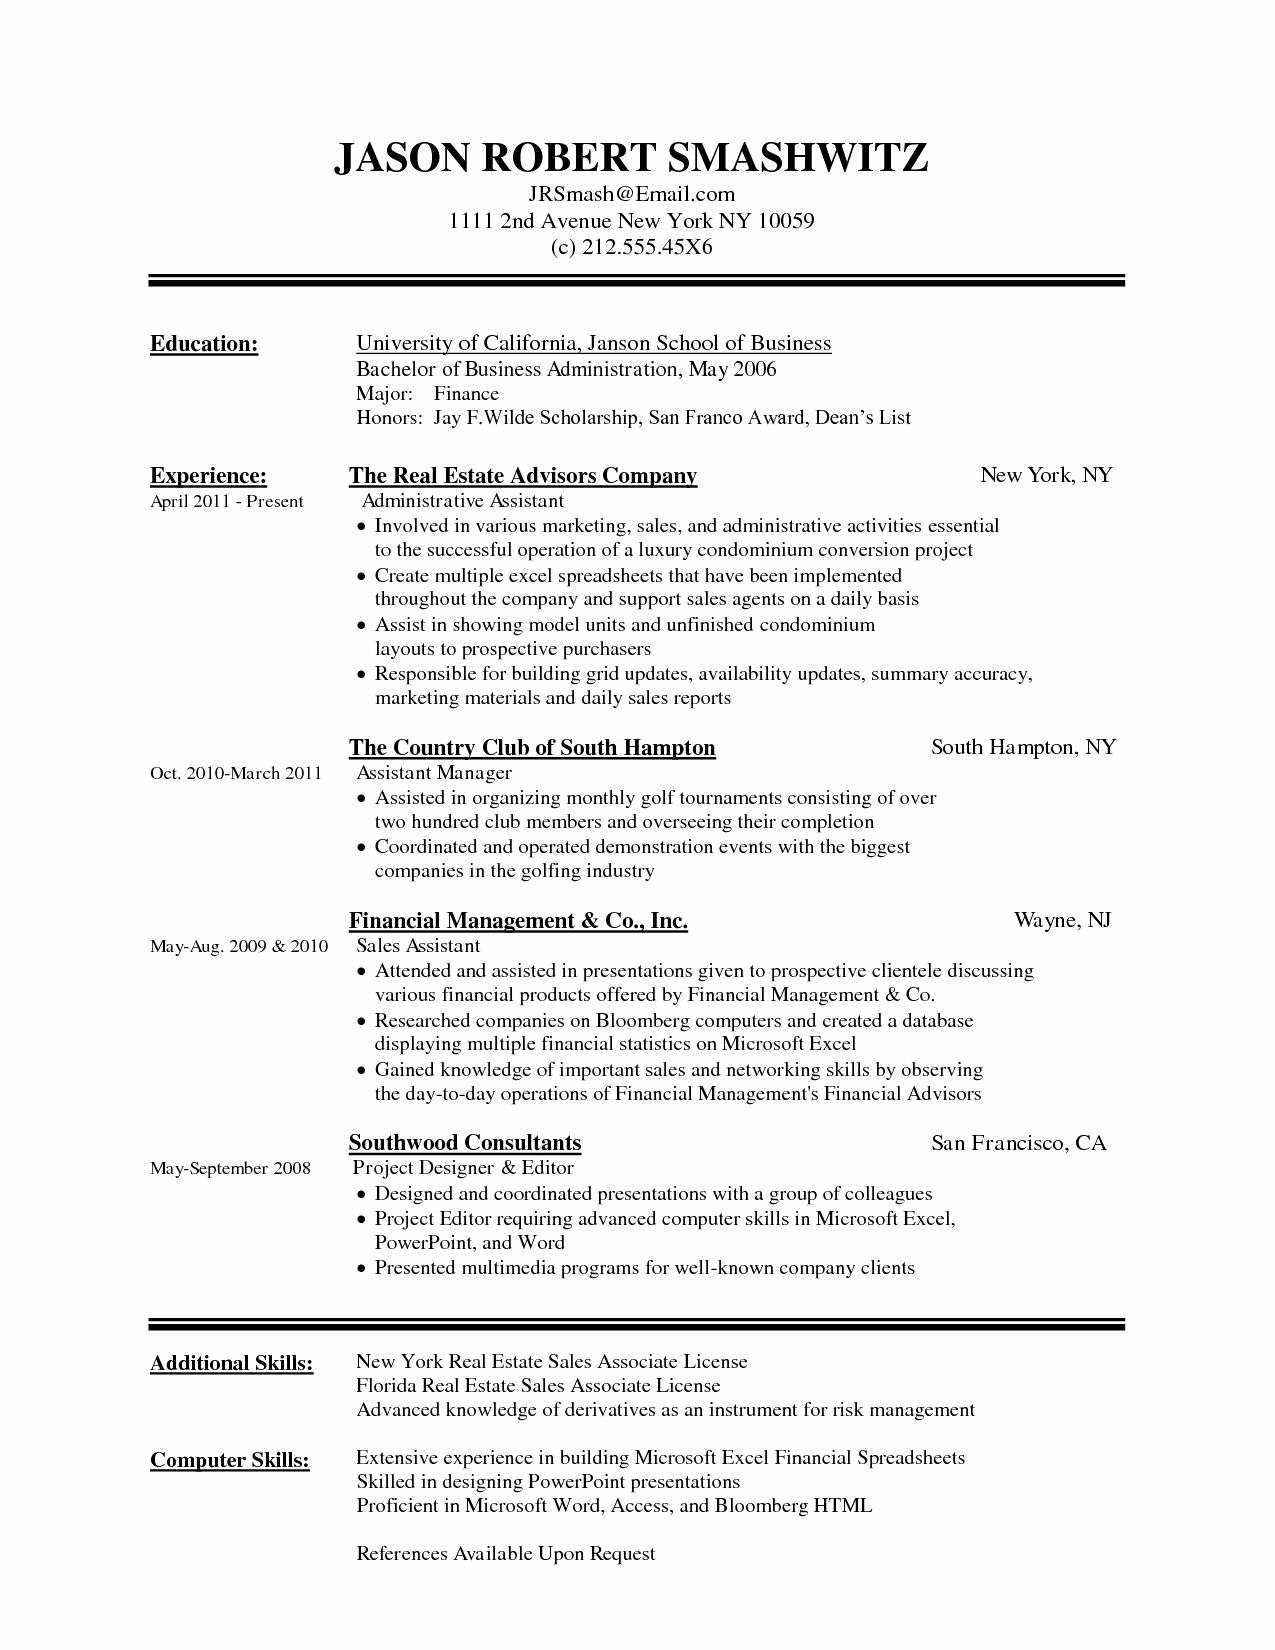 cover letter template libreoffice